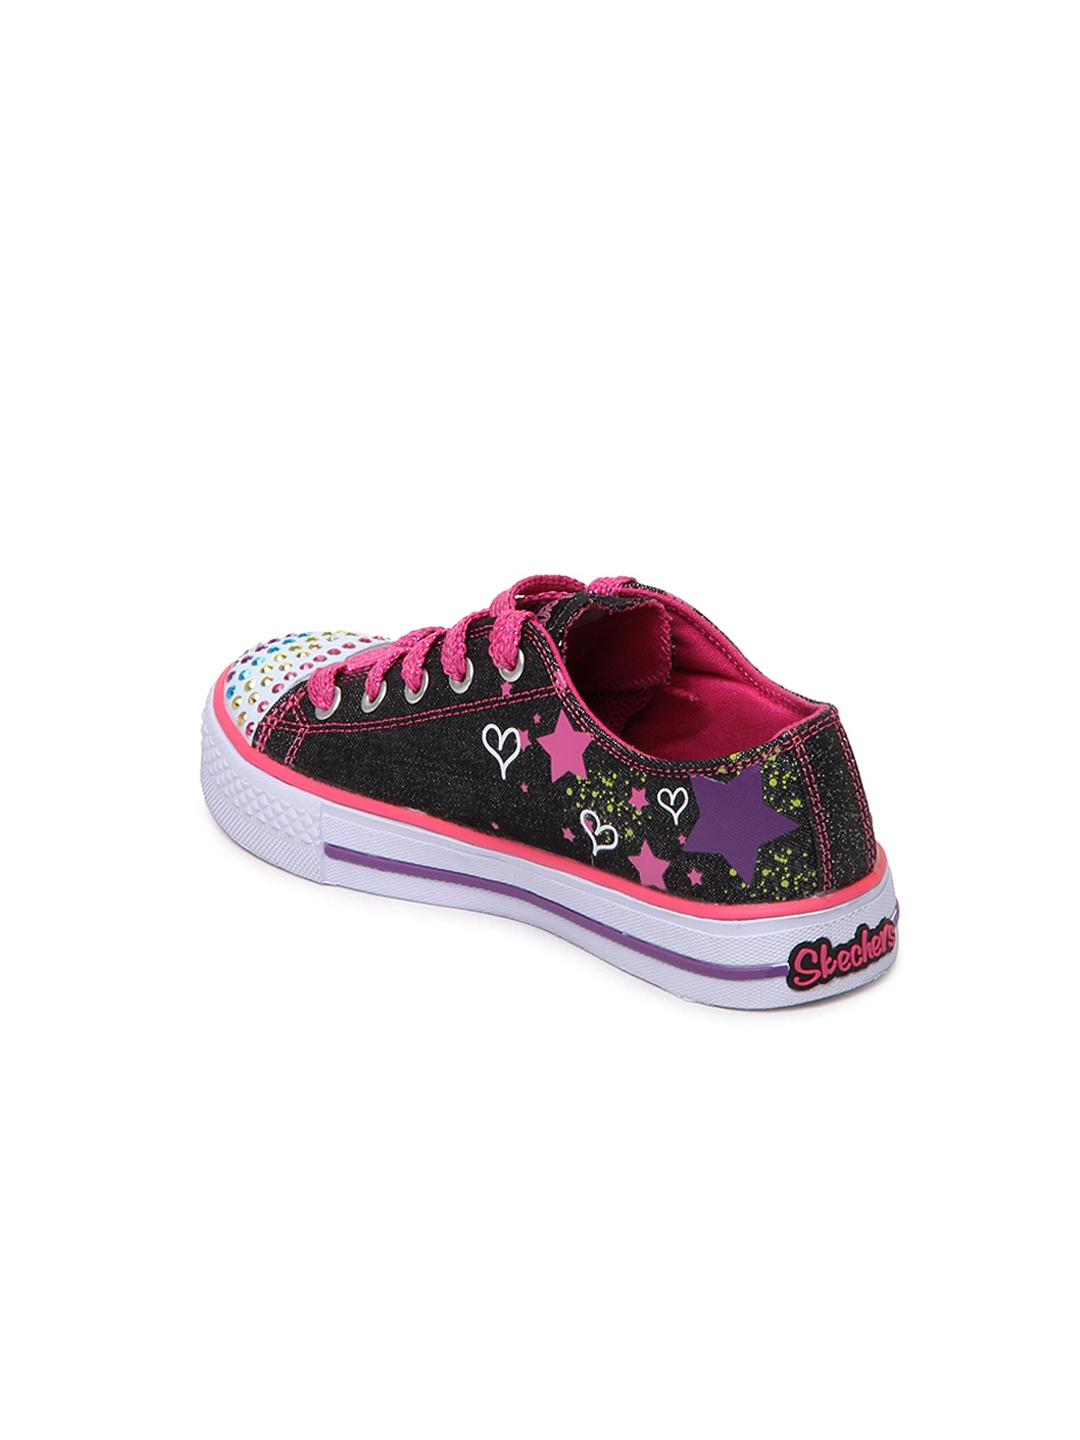 buy skechers twinkle toes online for